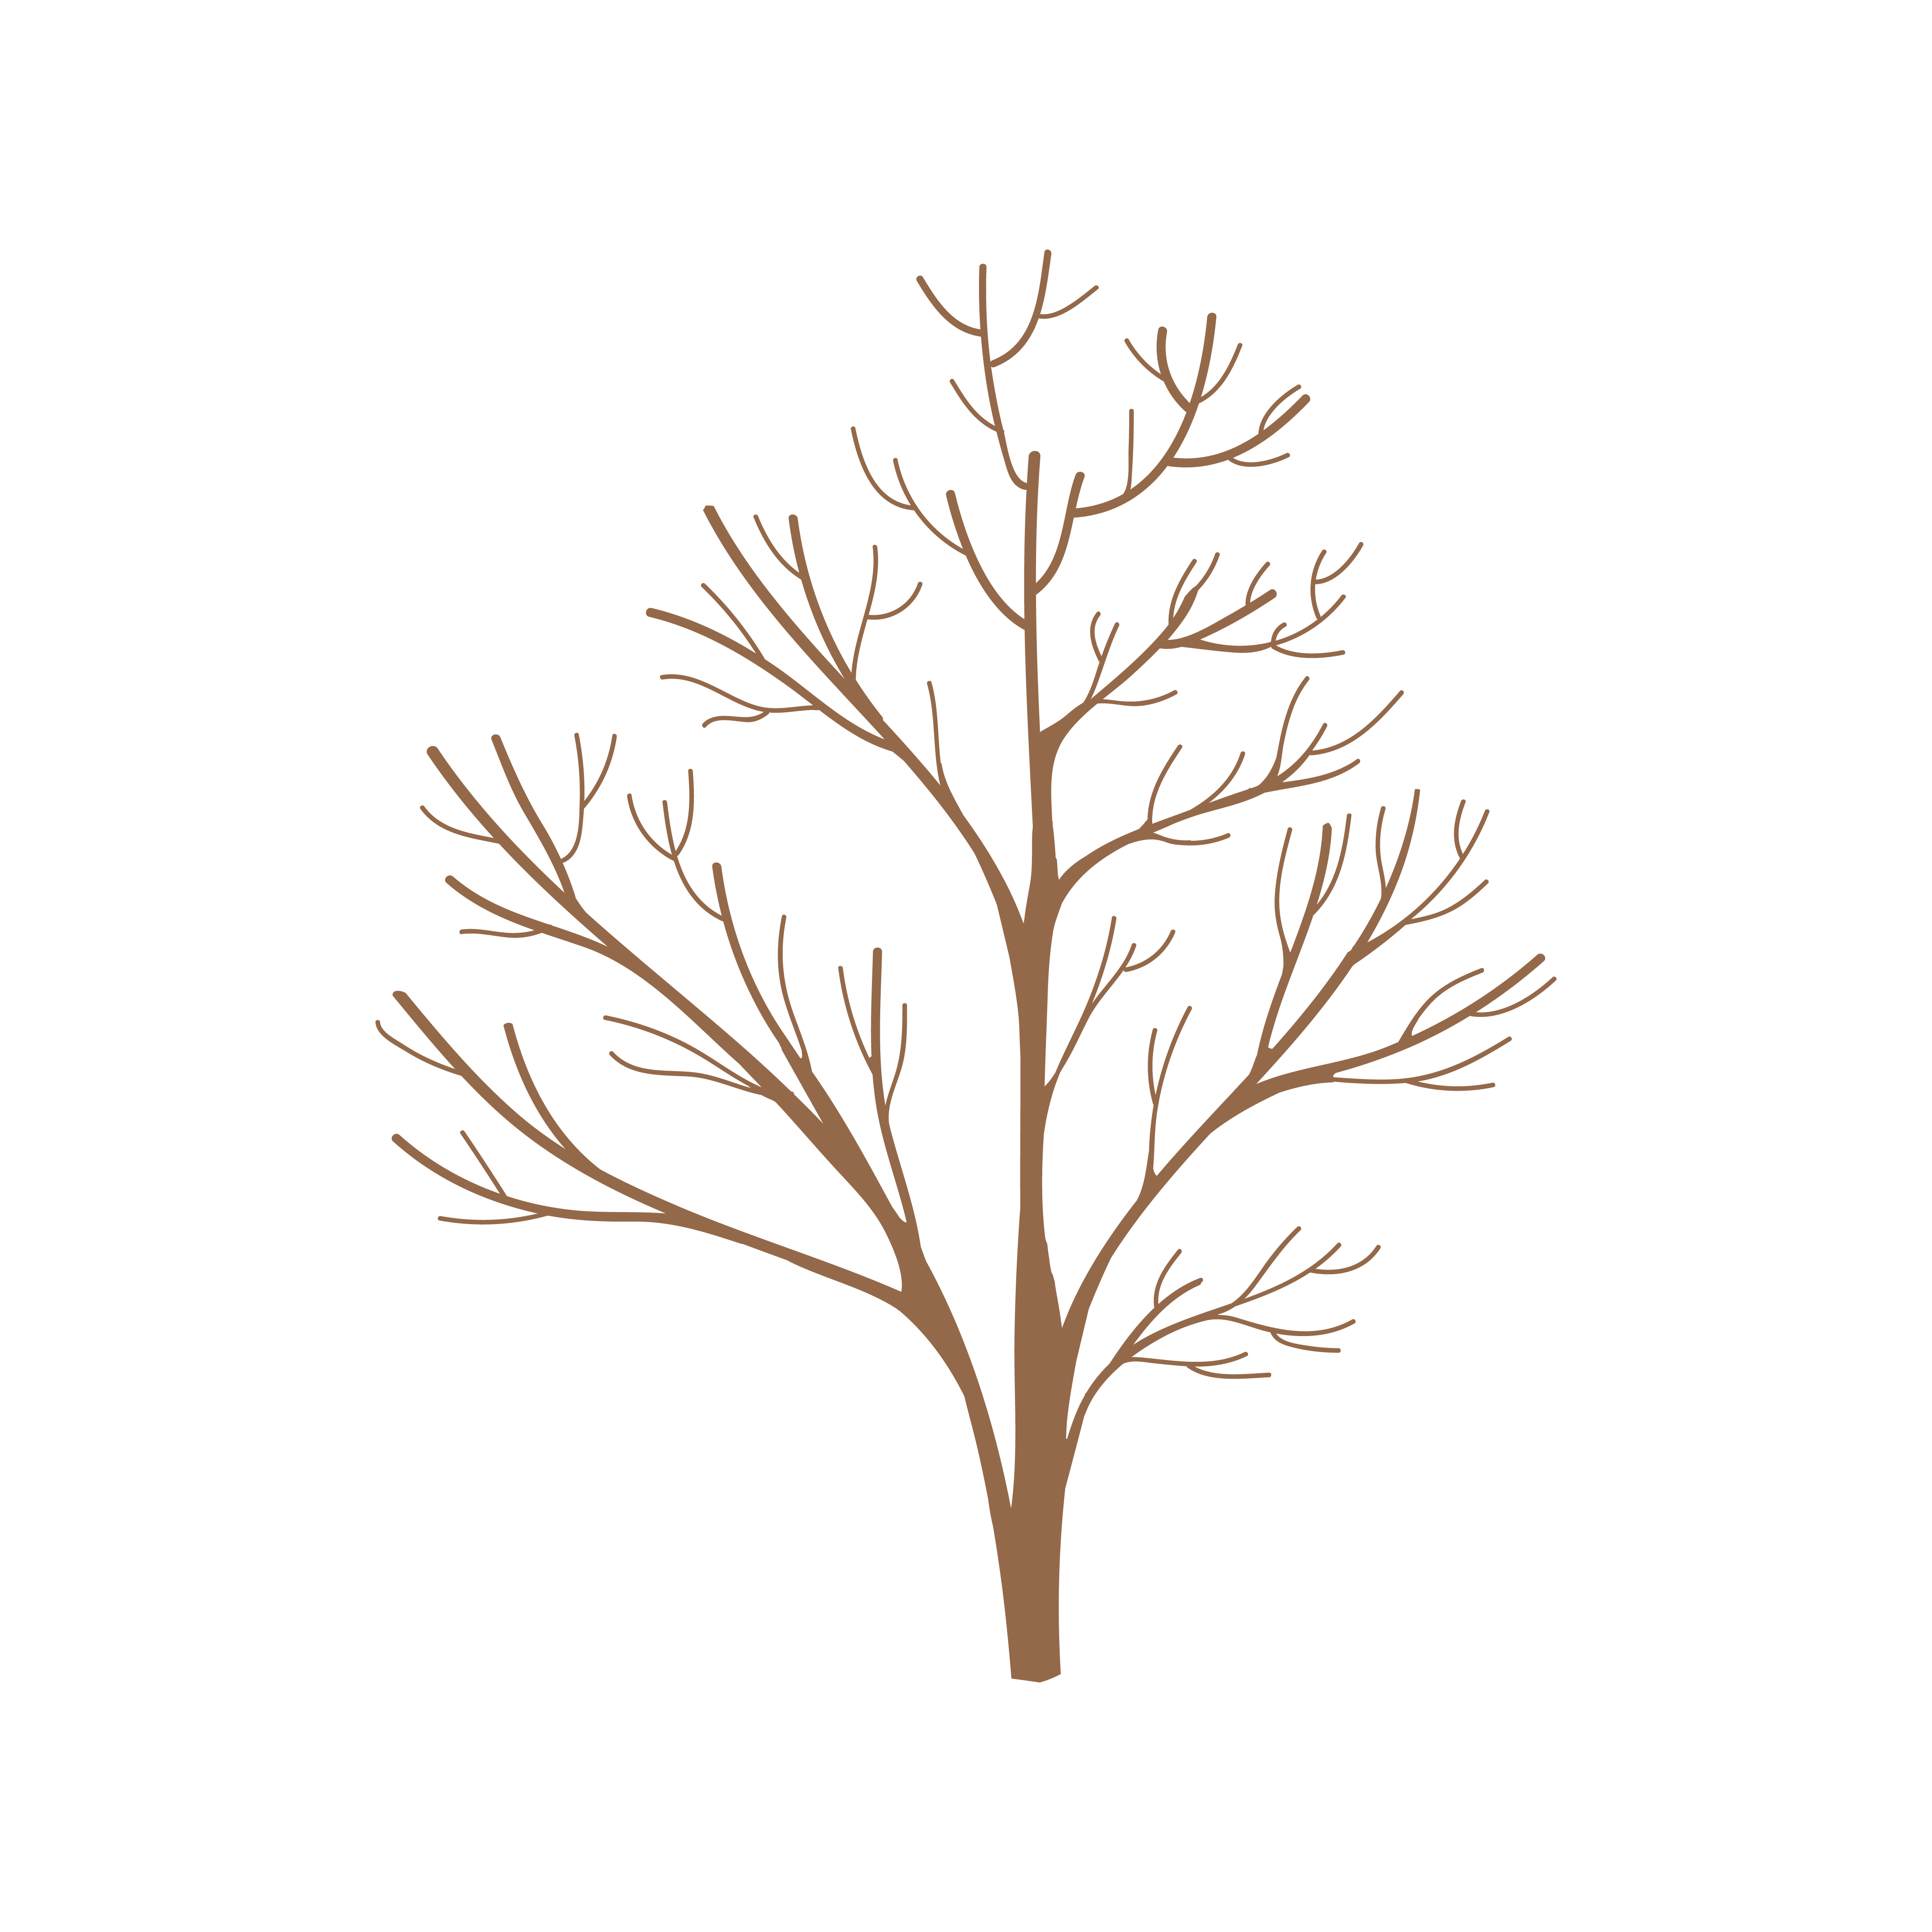 Tree Without Leaves Free Vector Art 8 Free Downloads